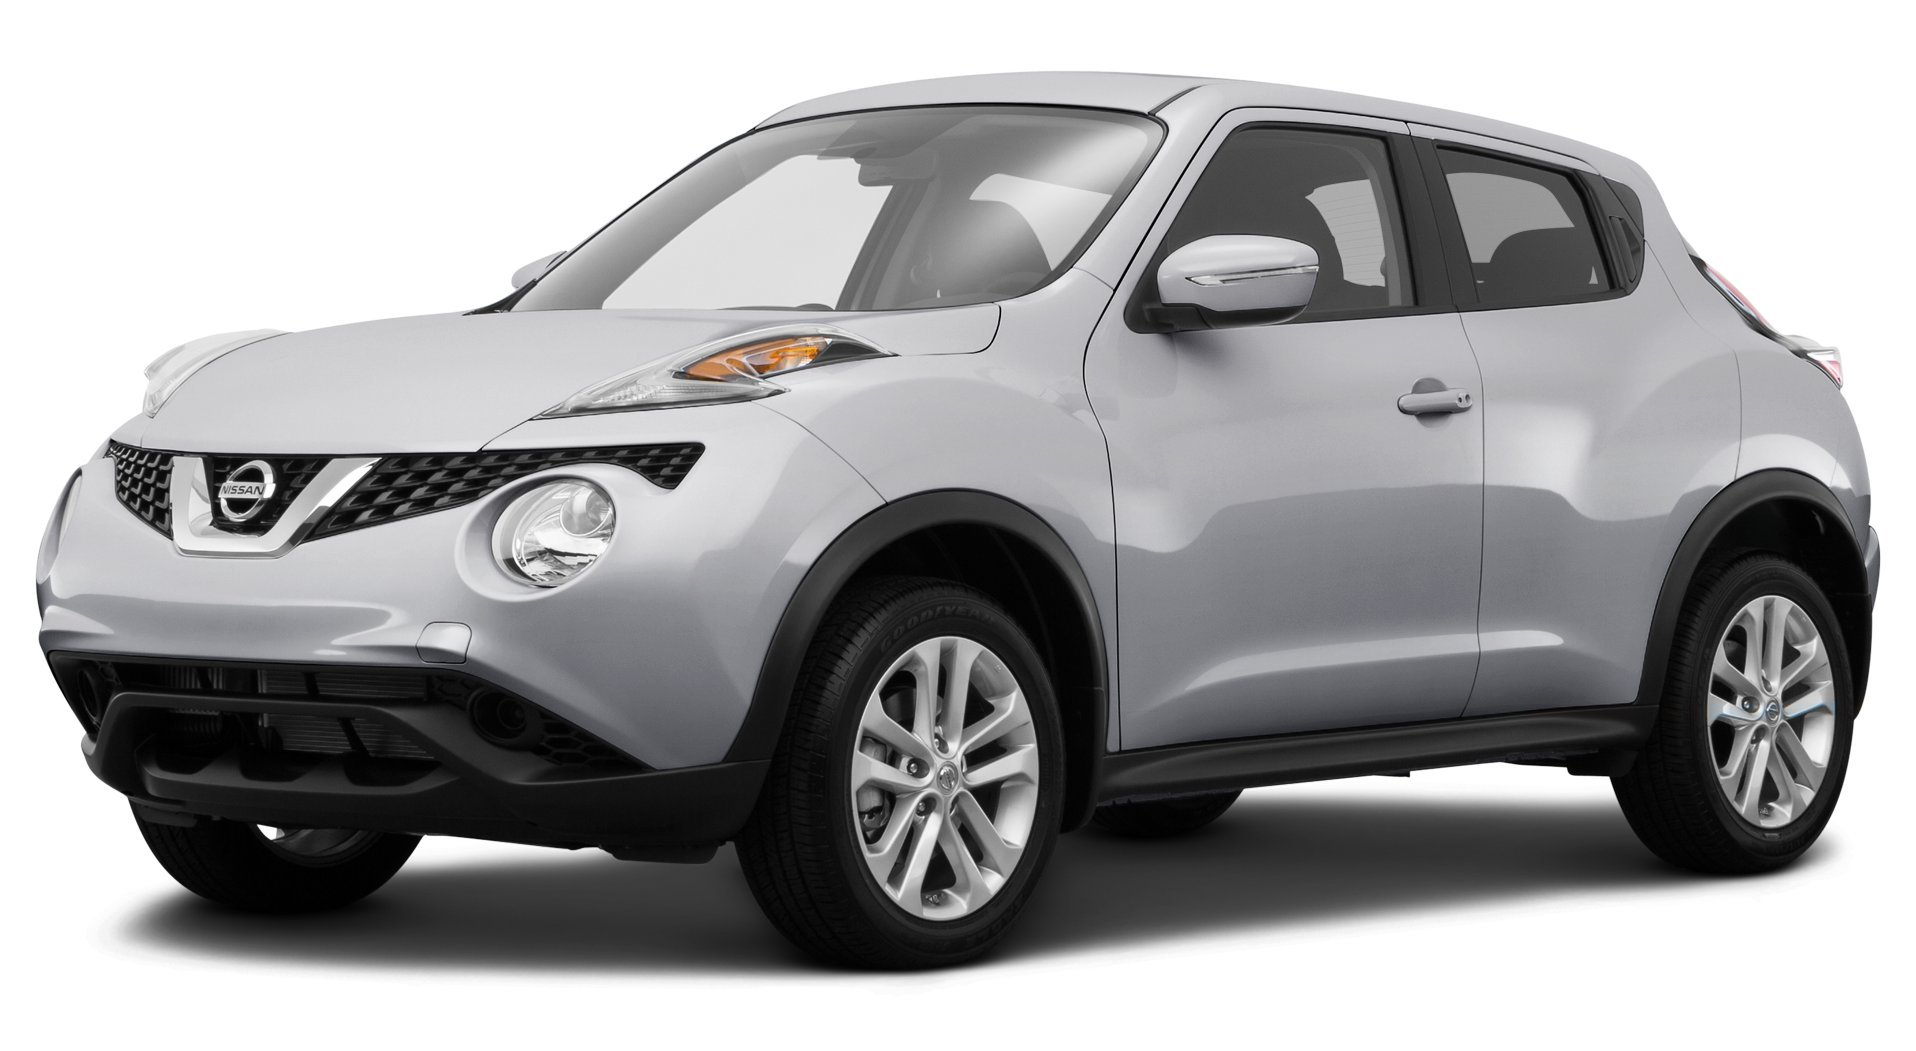 2015 nissan juke reviews images and specs. Black Bedroom Furniture Sets. Home Design Ideas